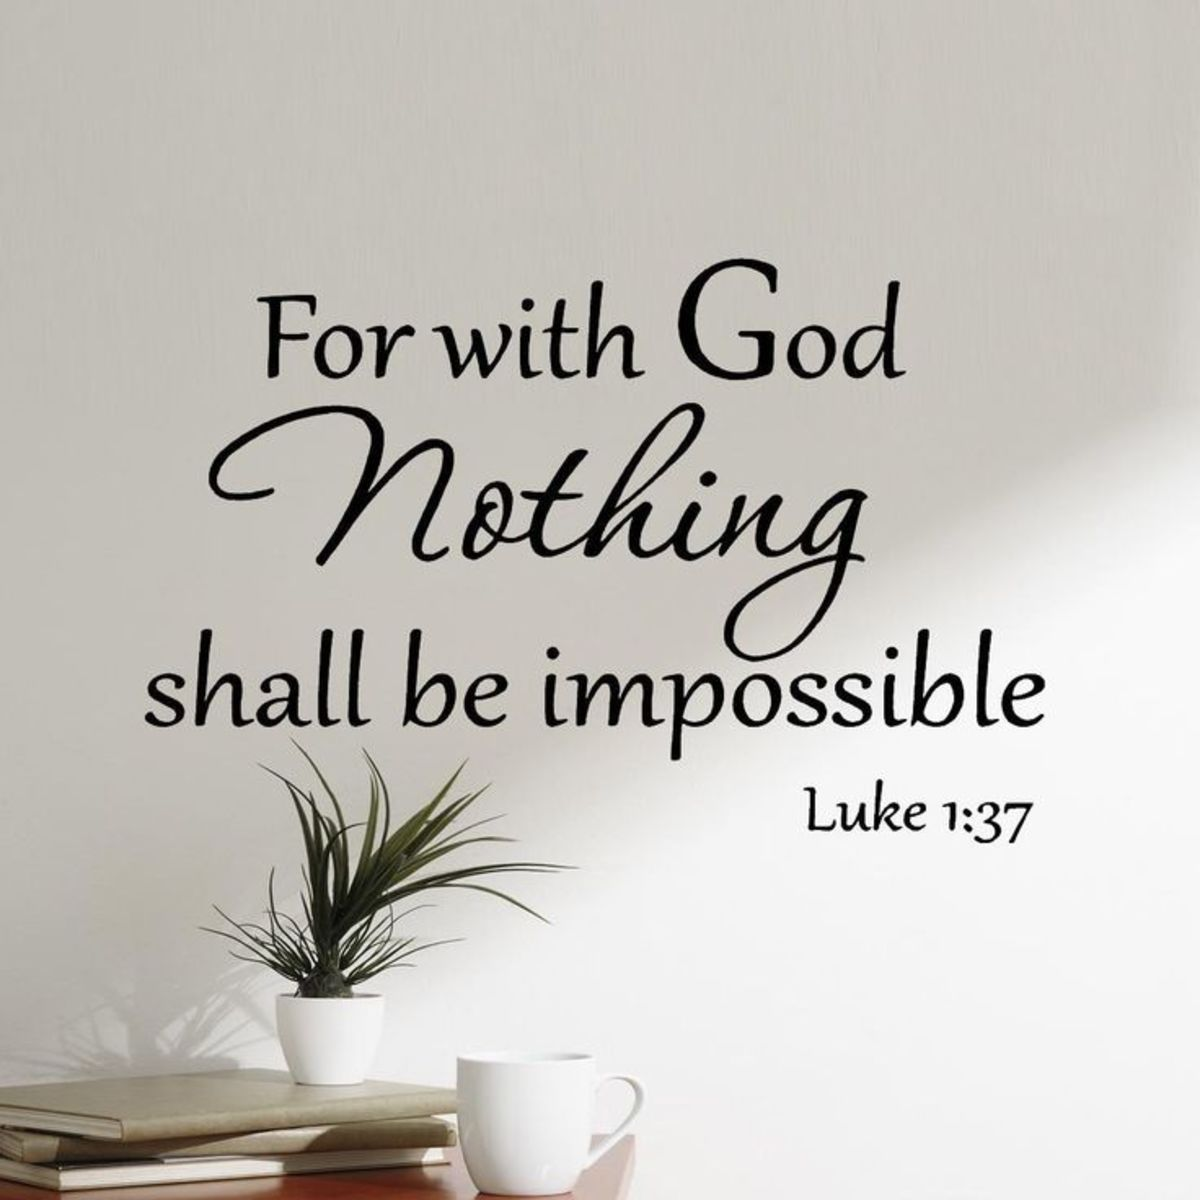 a-song-god-of-possibilities